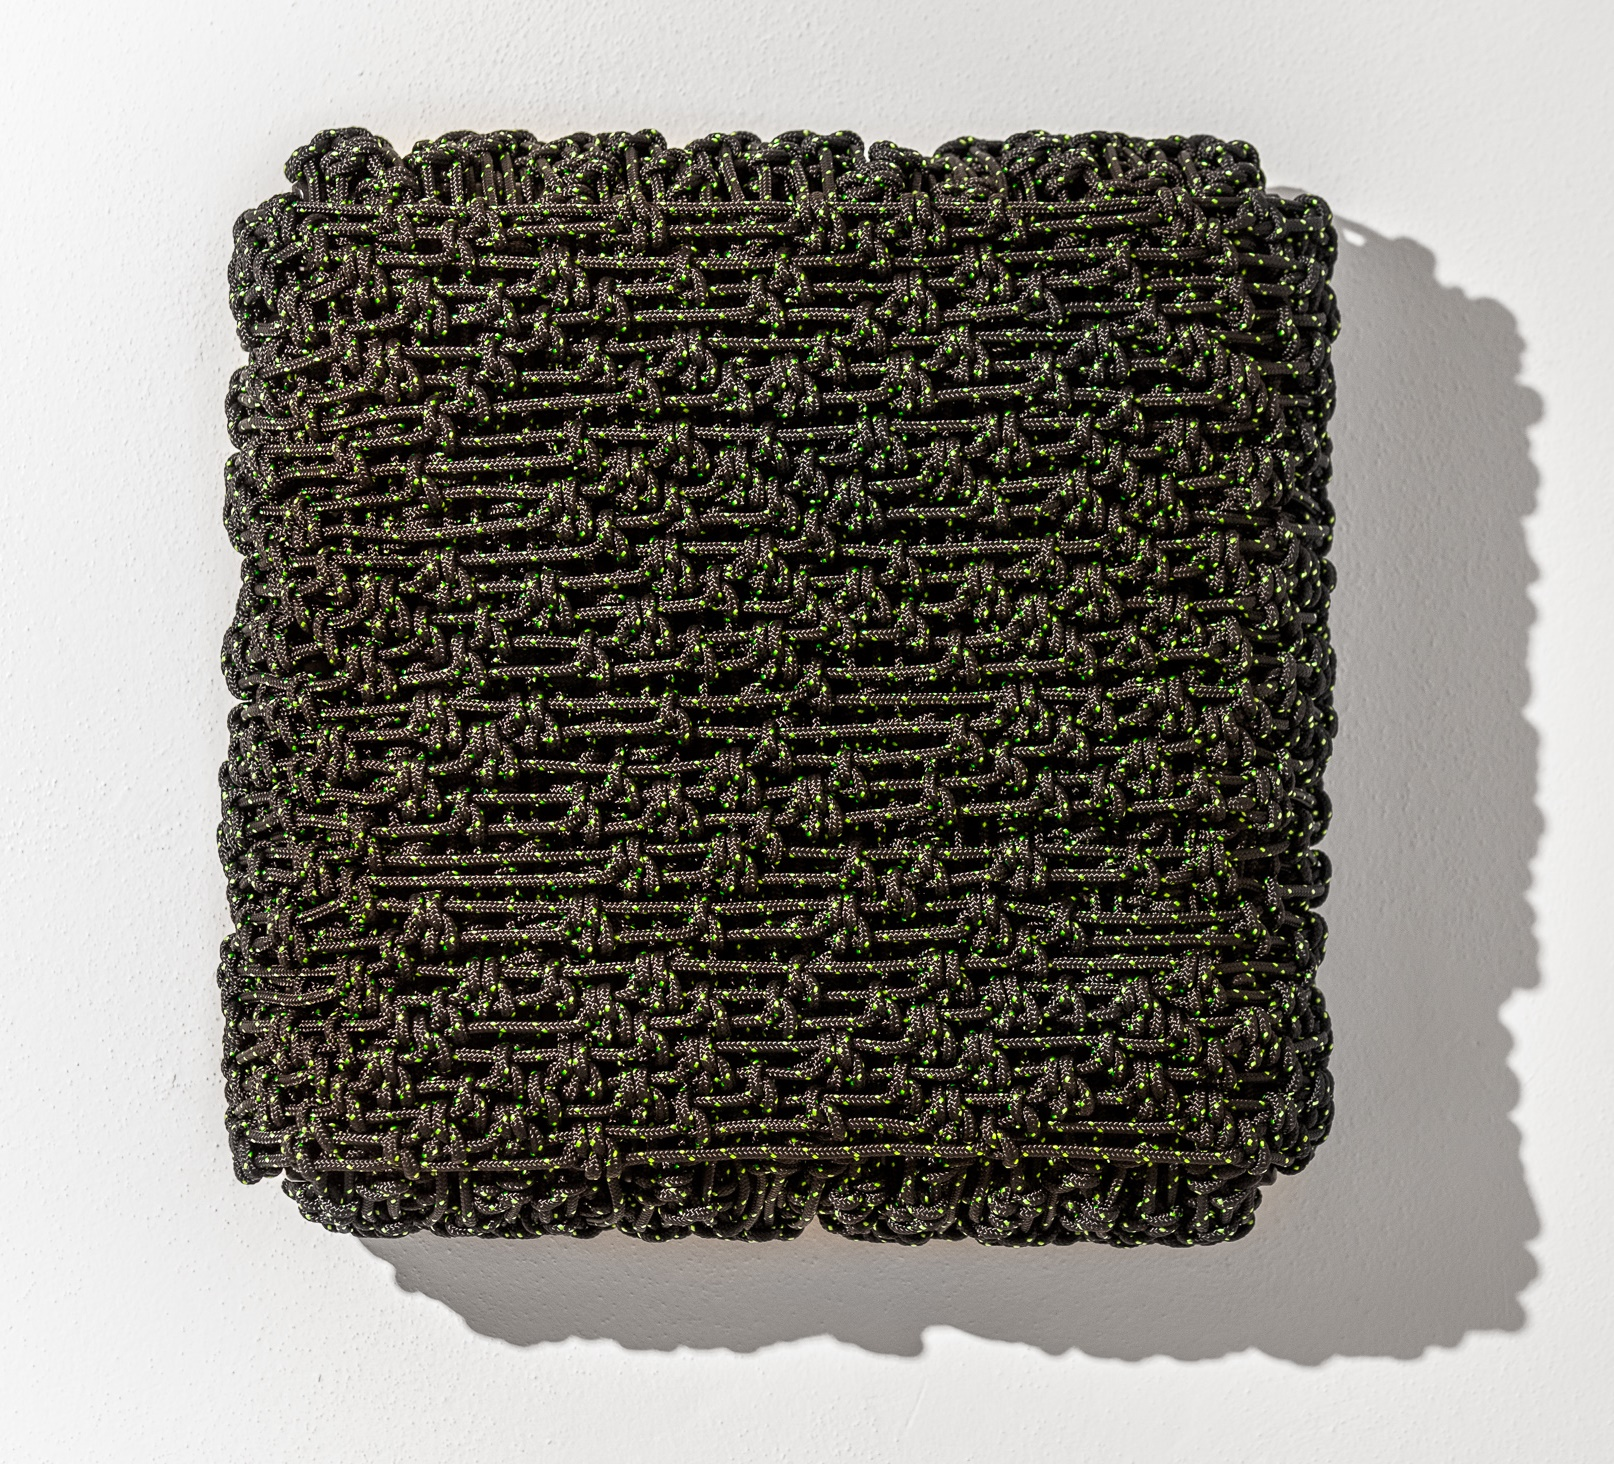 Arthur Duff, Fragment_M55, 2015, black and green polyester rope and alluminium frame